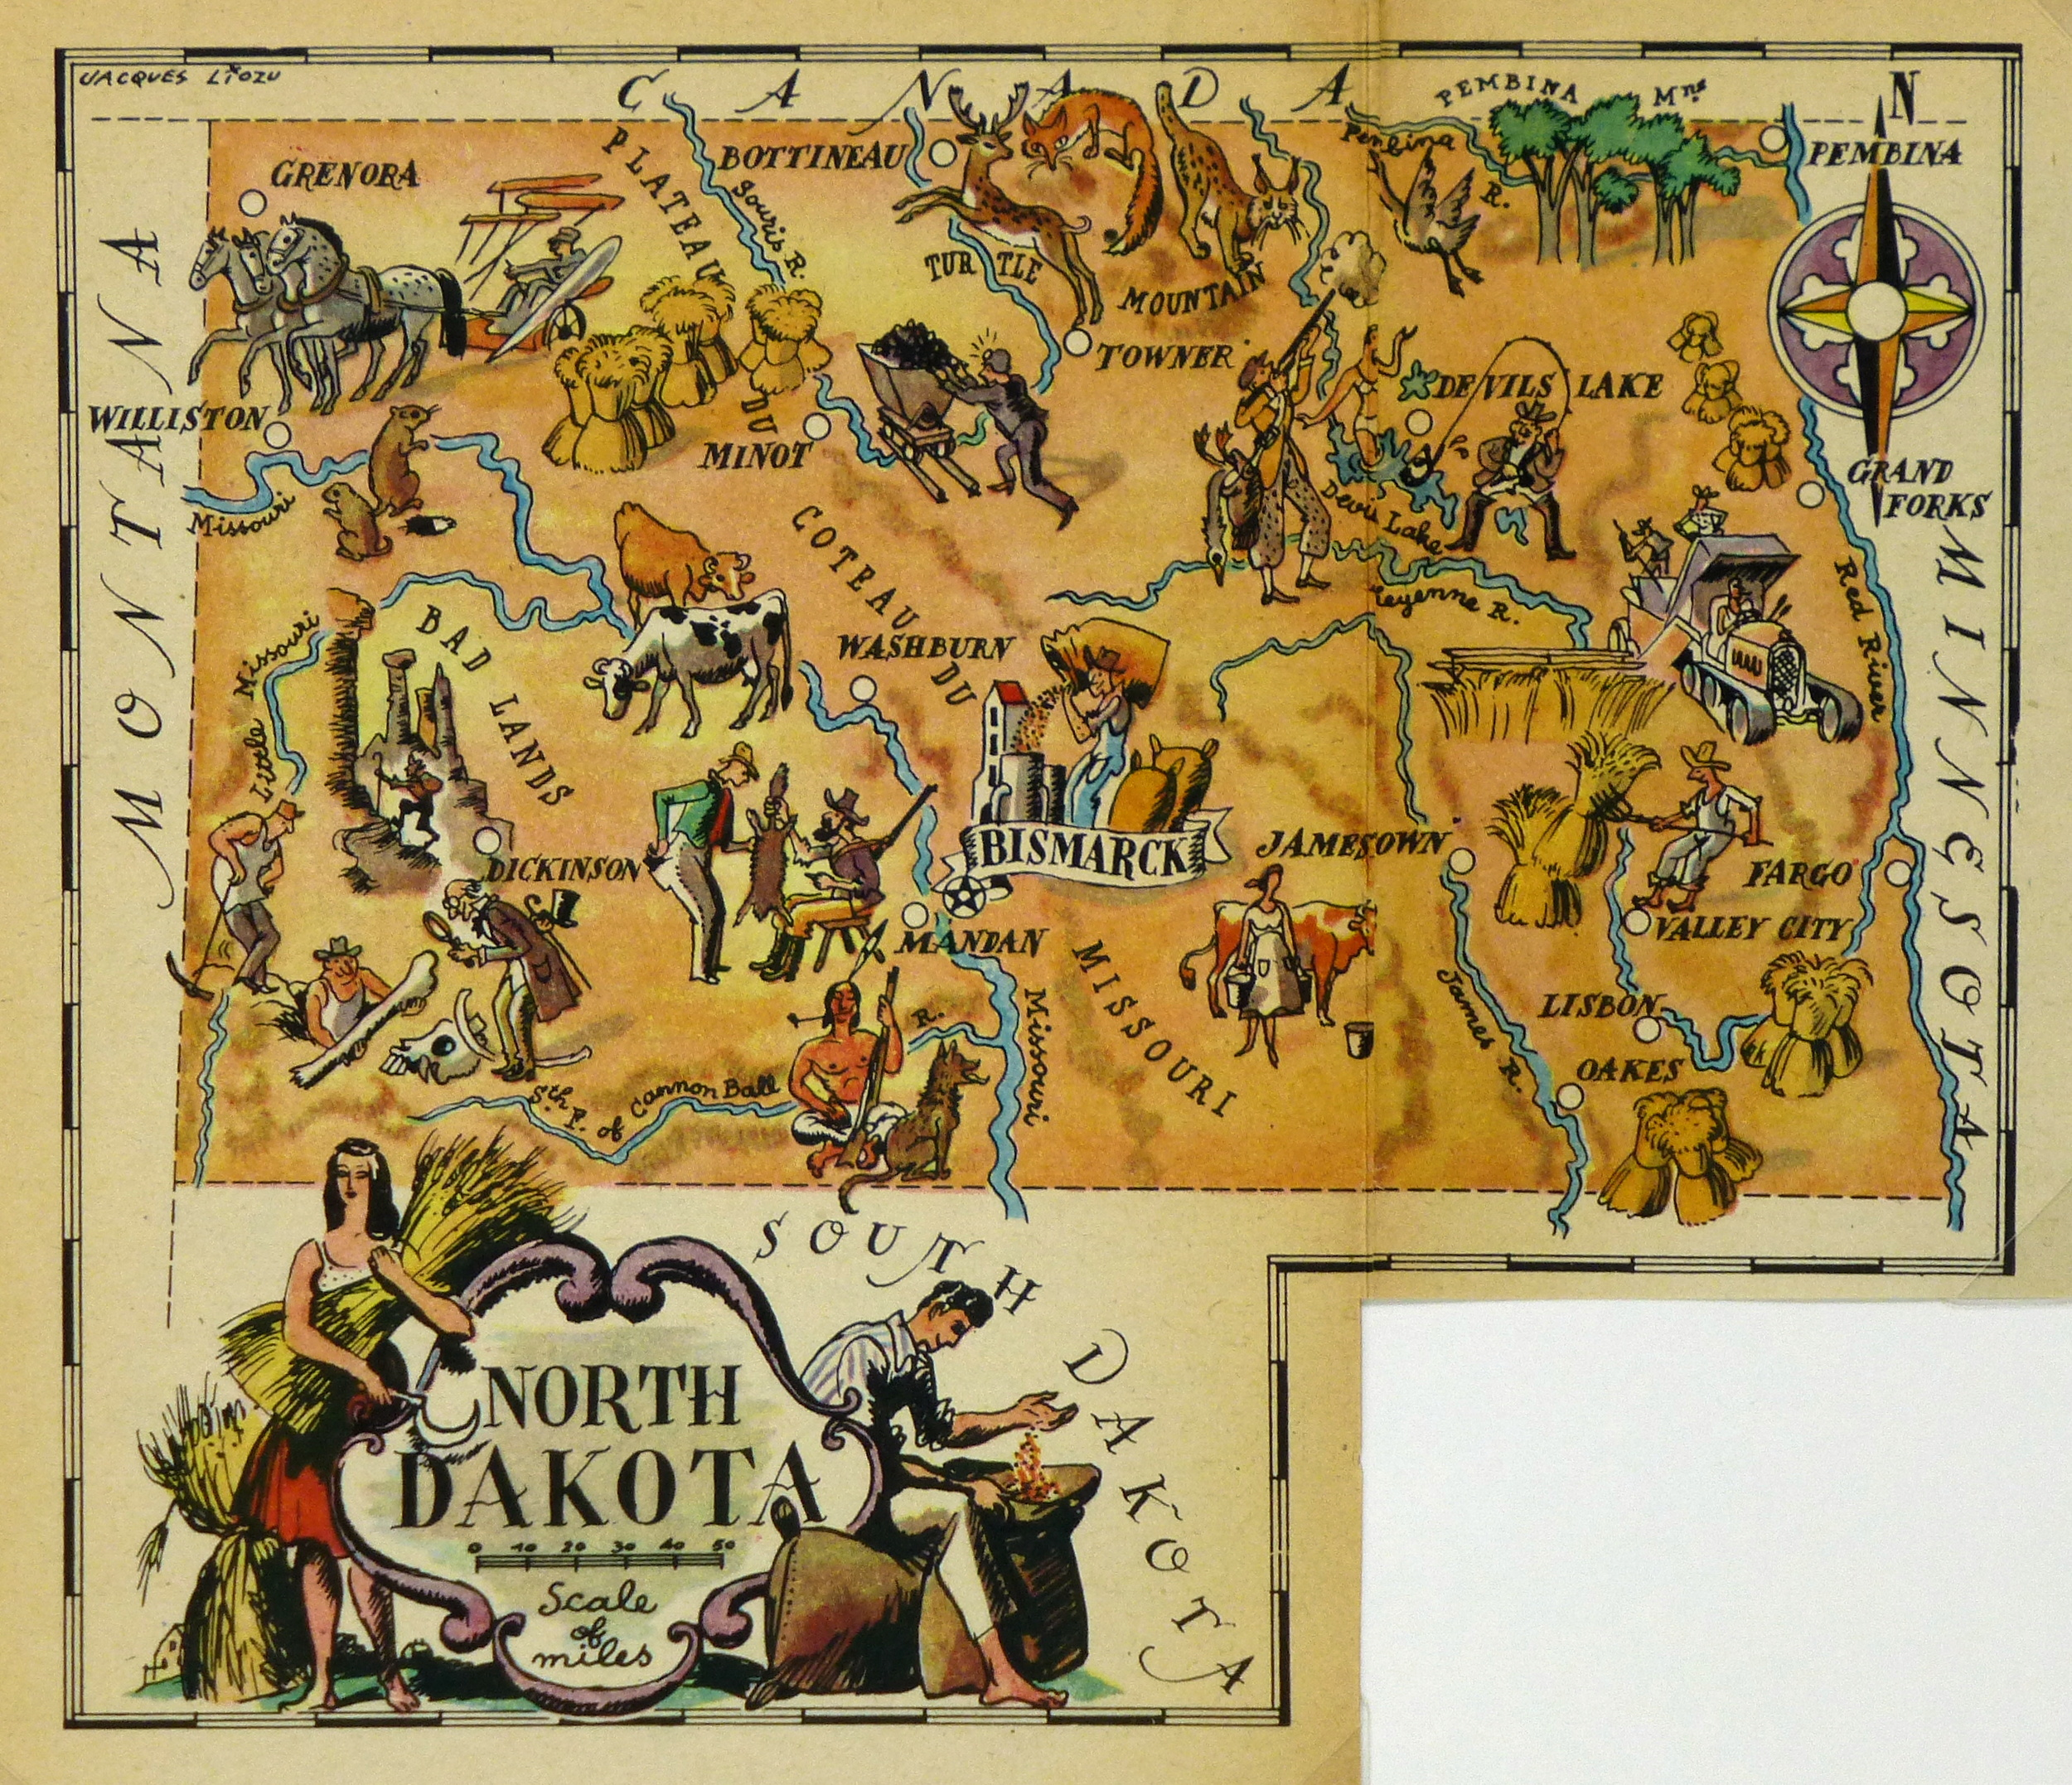 North Dakota Pictorial Map, 1946